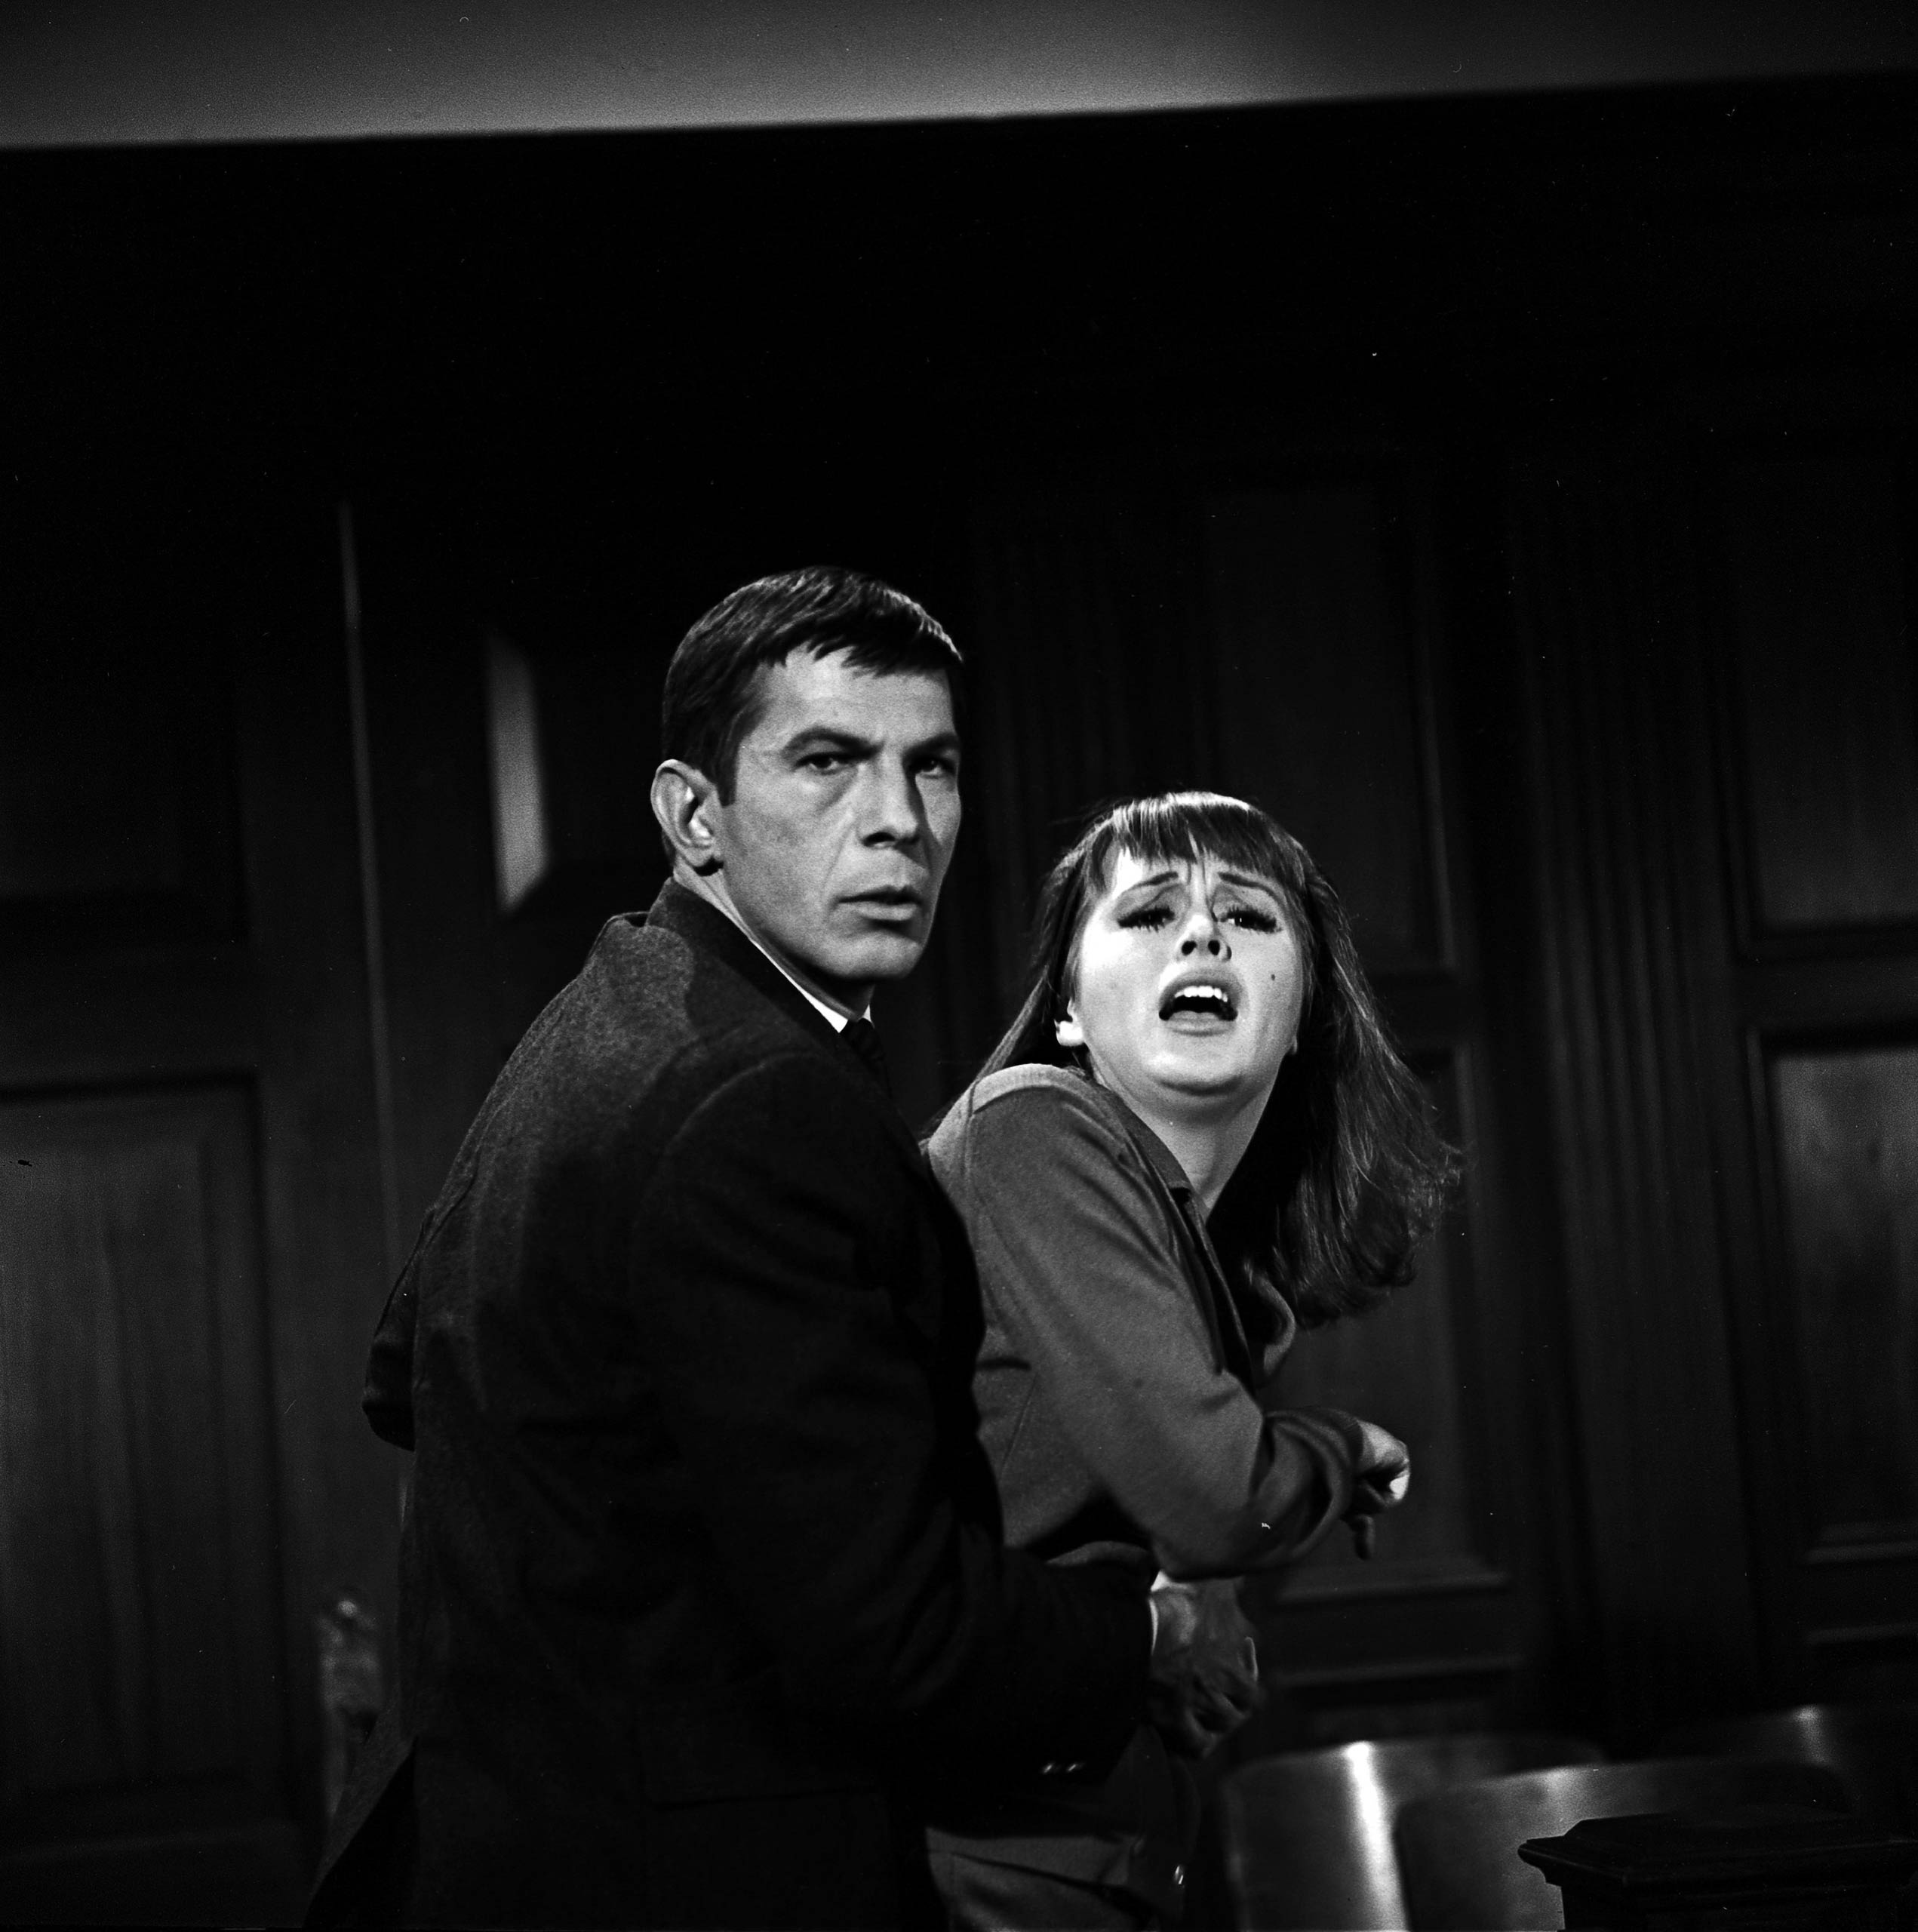 Leonard Nimoy in <i>The Outer Limits</i> in 1964.